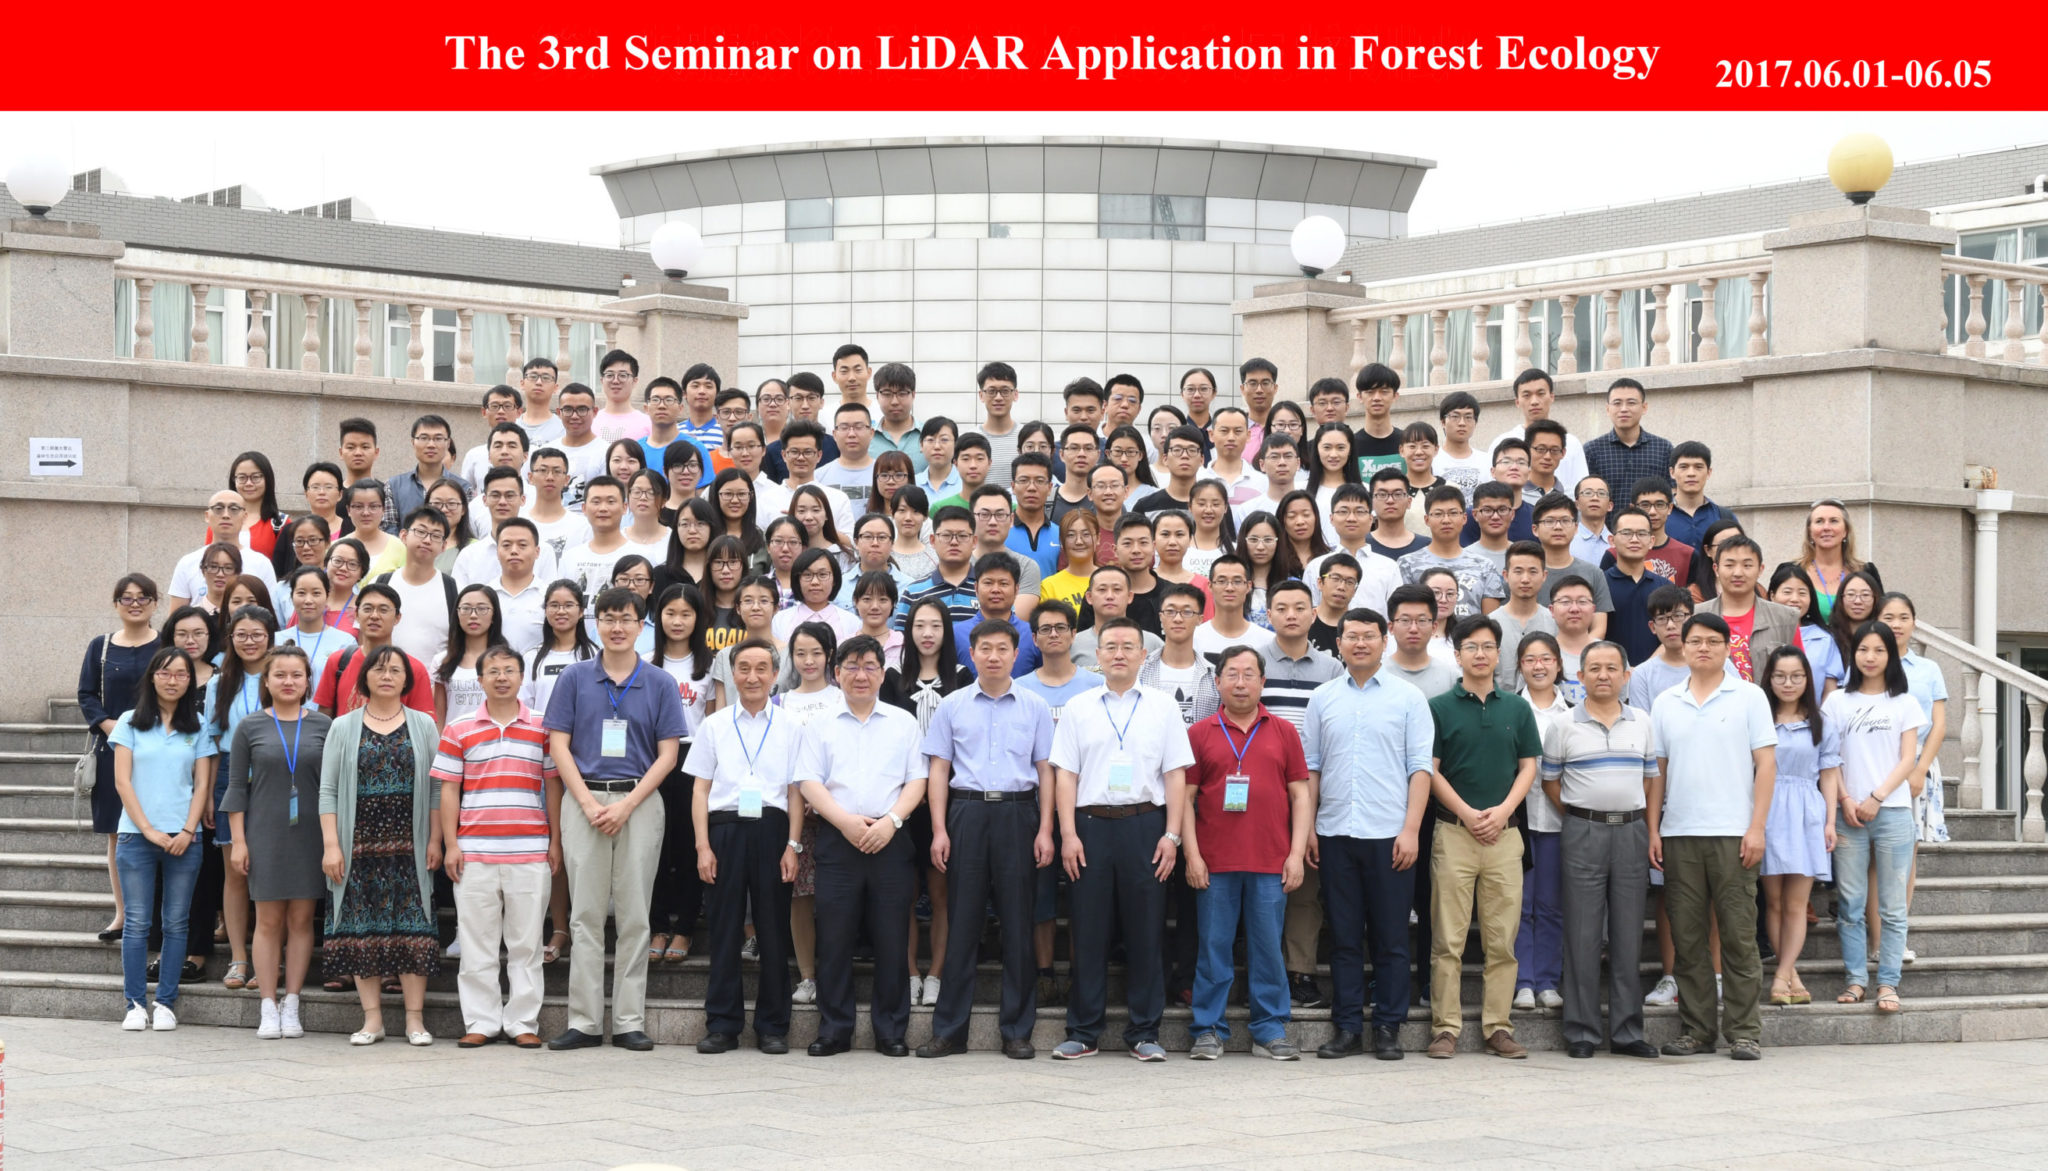 2017.06    We have successfully held the 3rd Seminar on LiDAR Application in Forest Ecology!